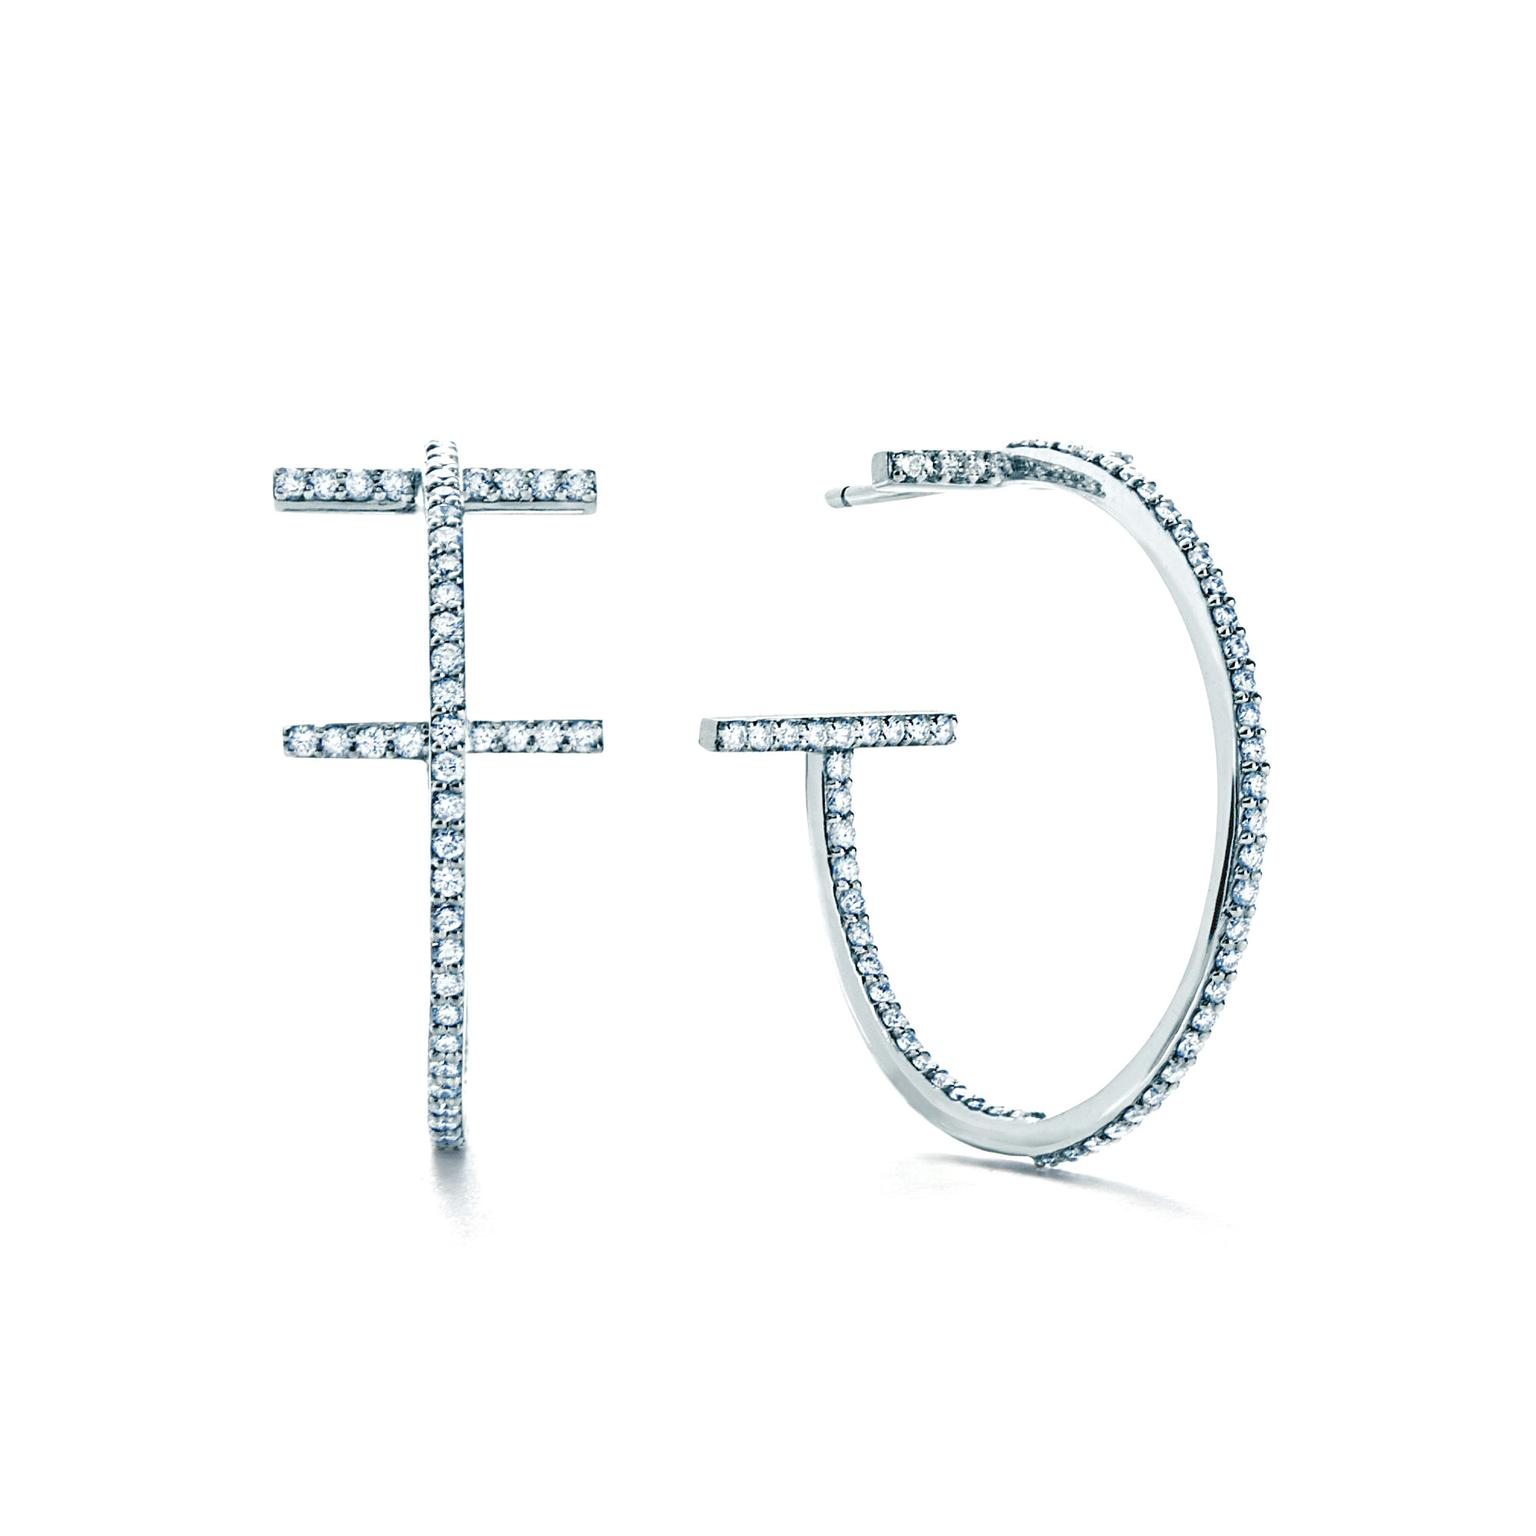 Tiffany T diamond hoop earrings